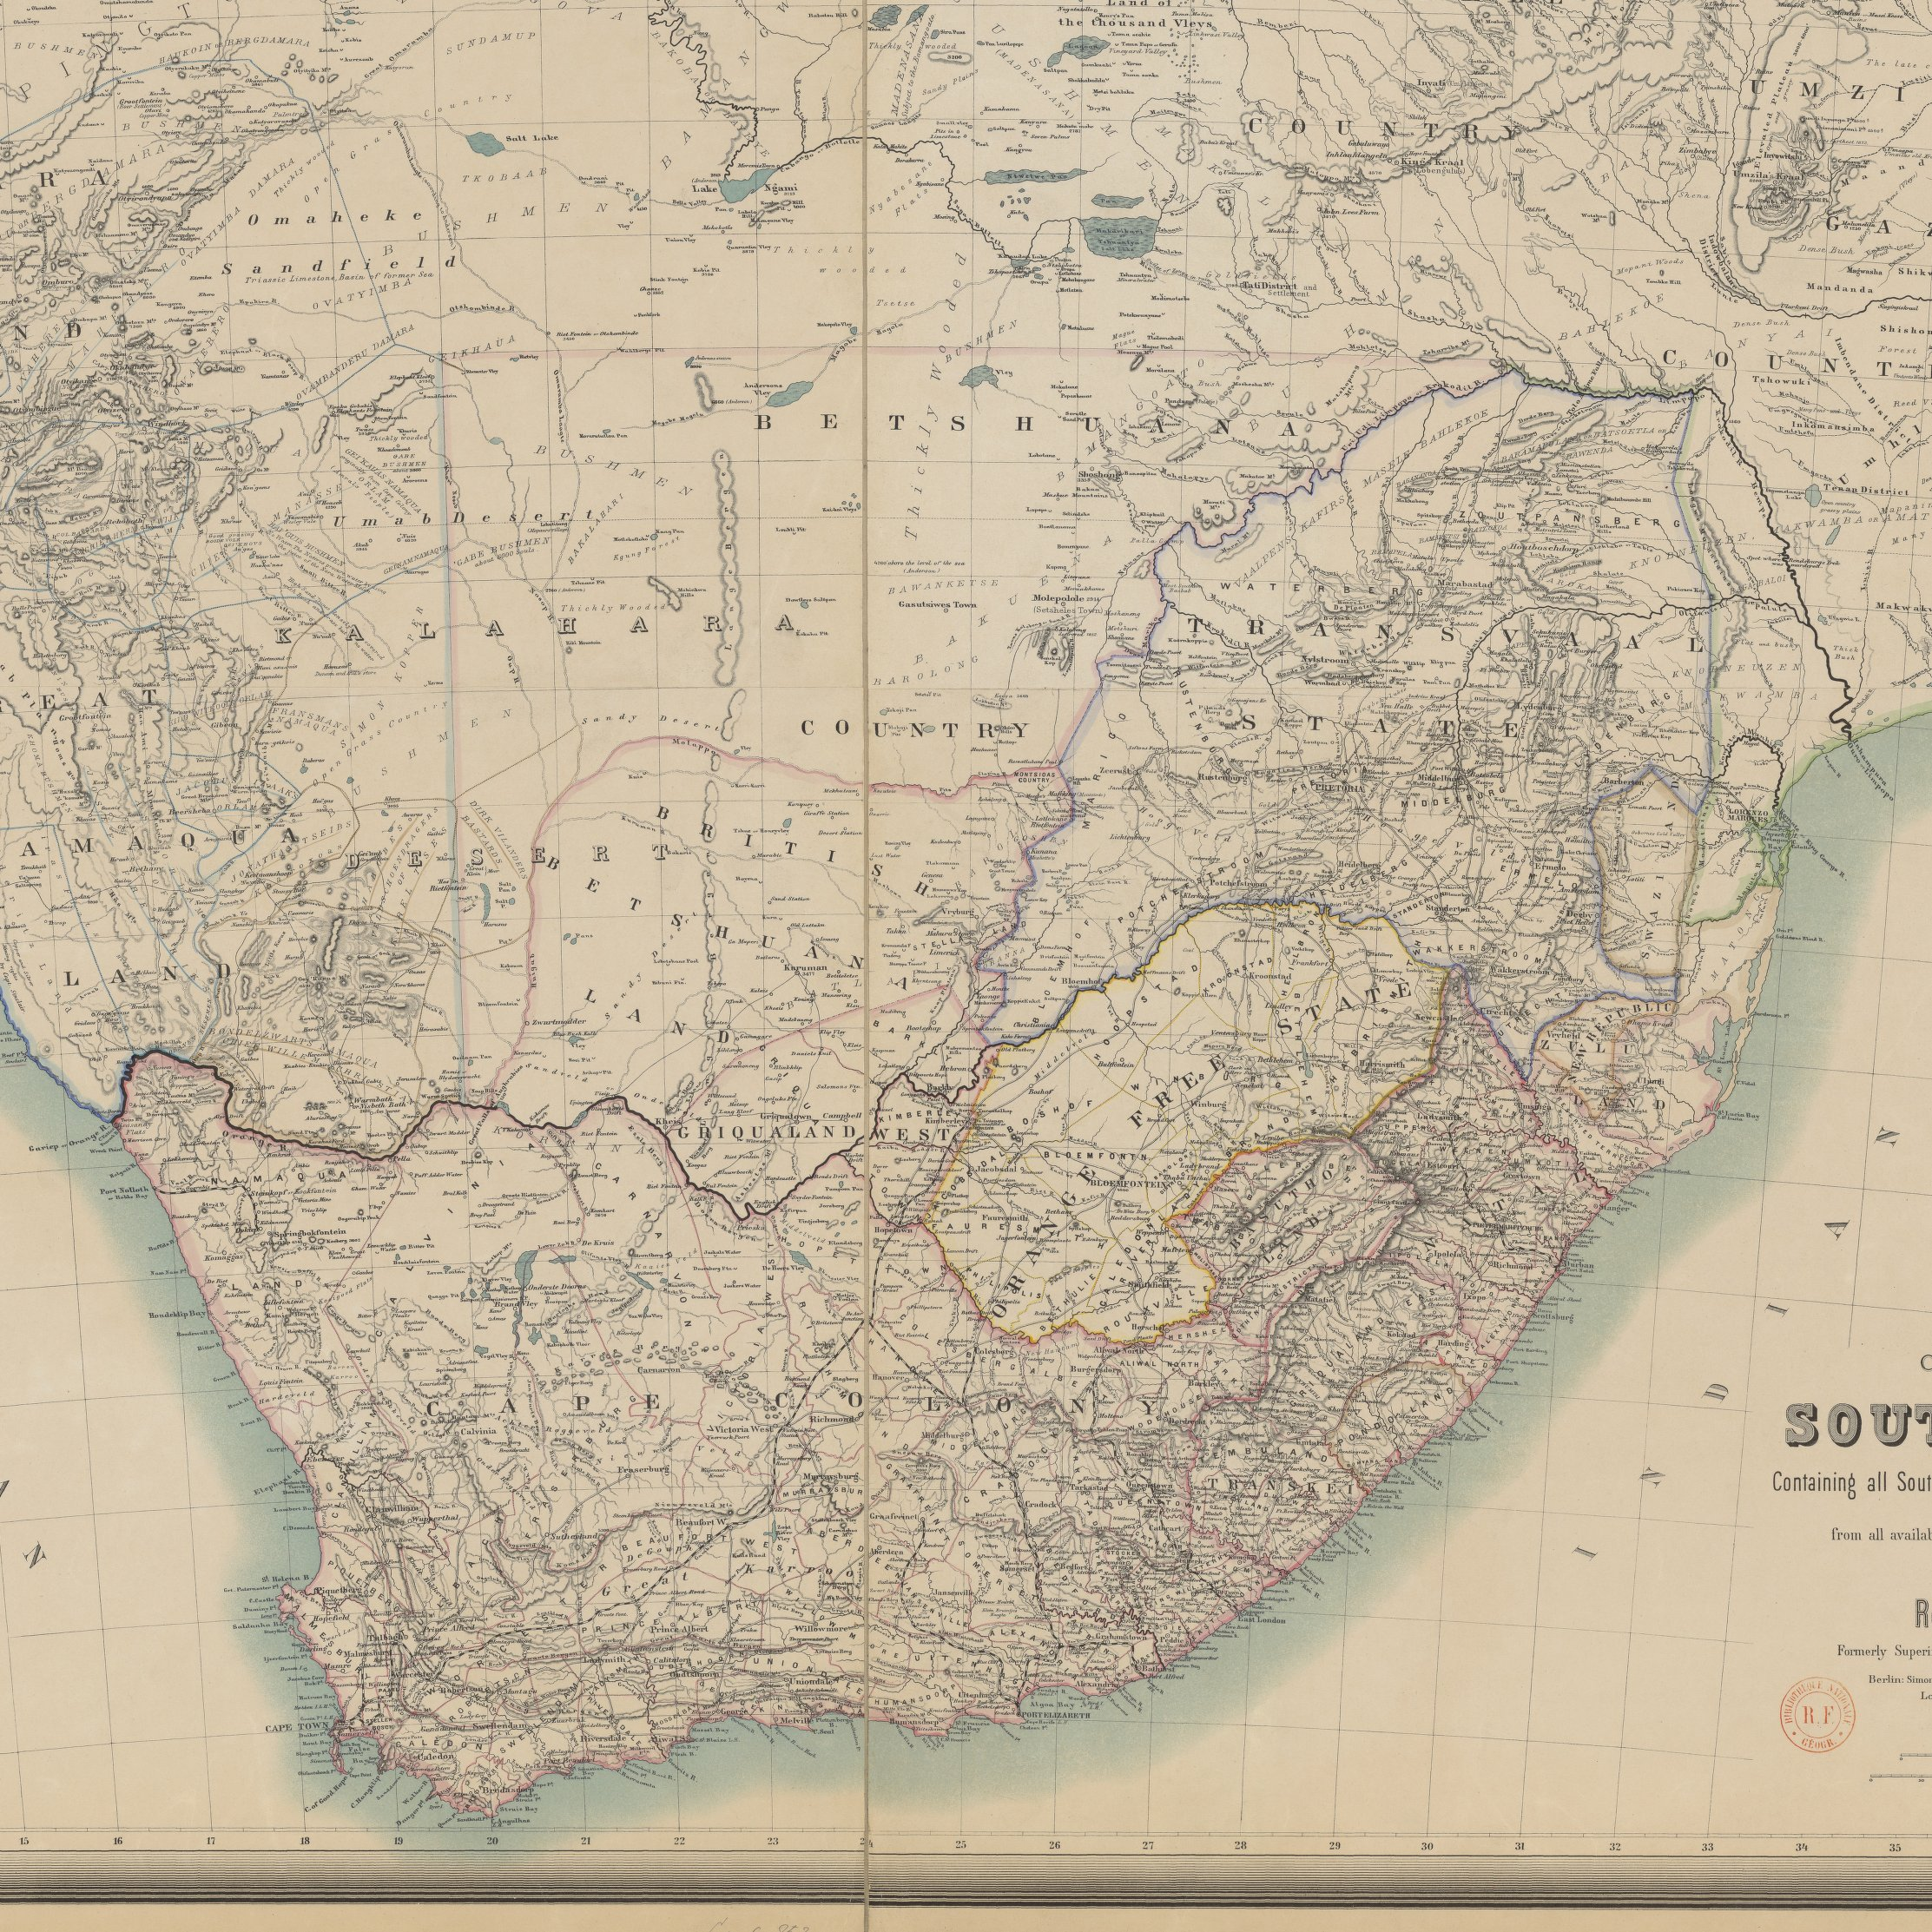 South Africa Colonial All South African Colonies